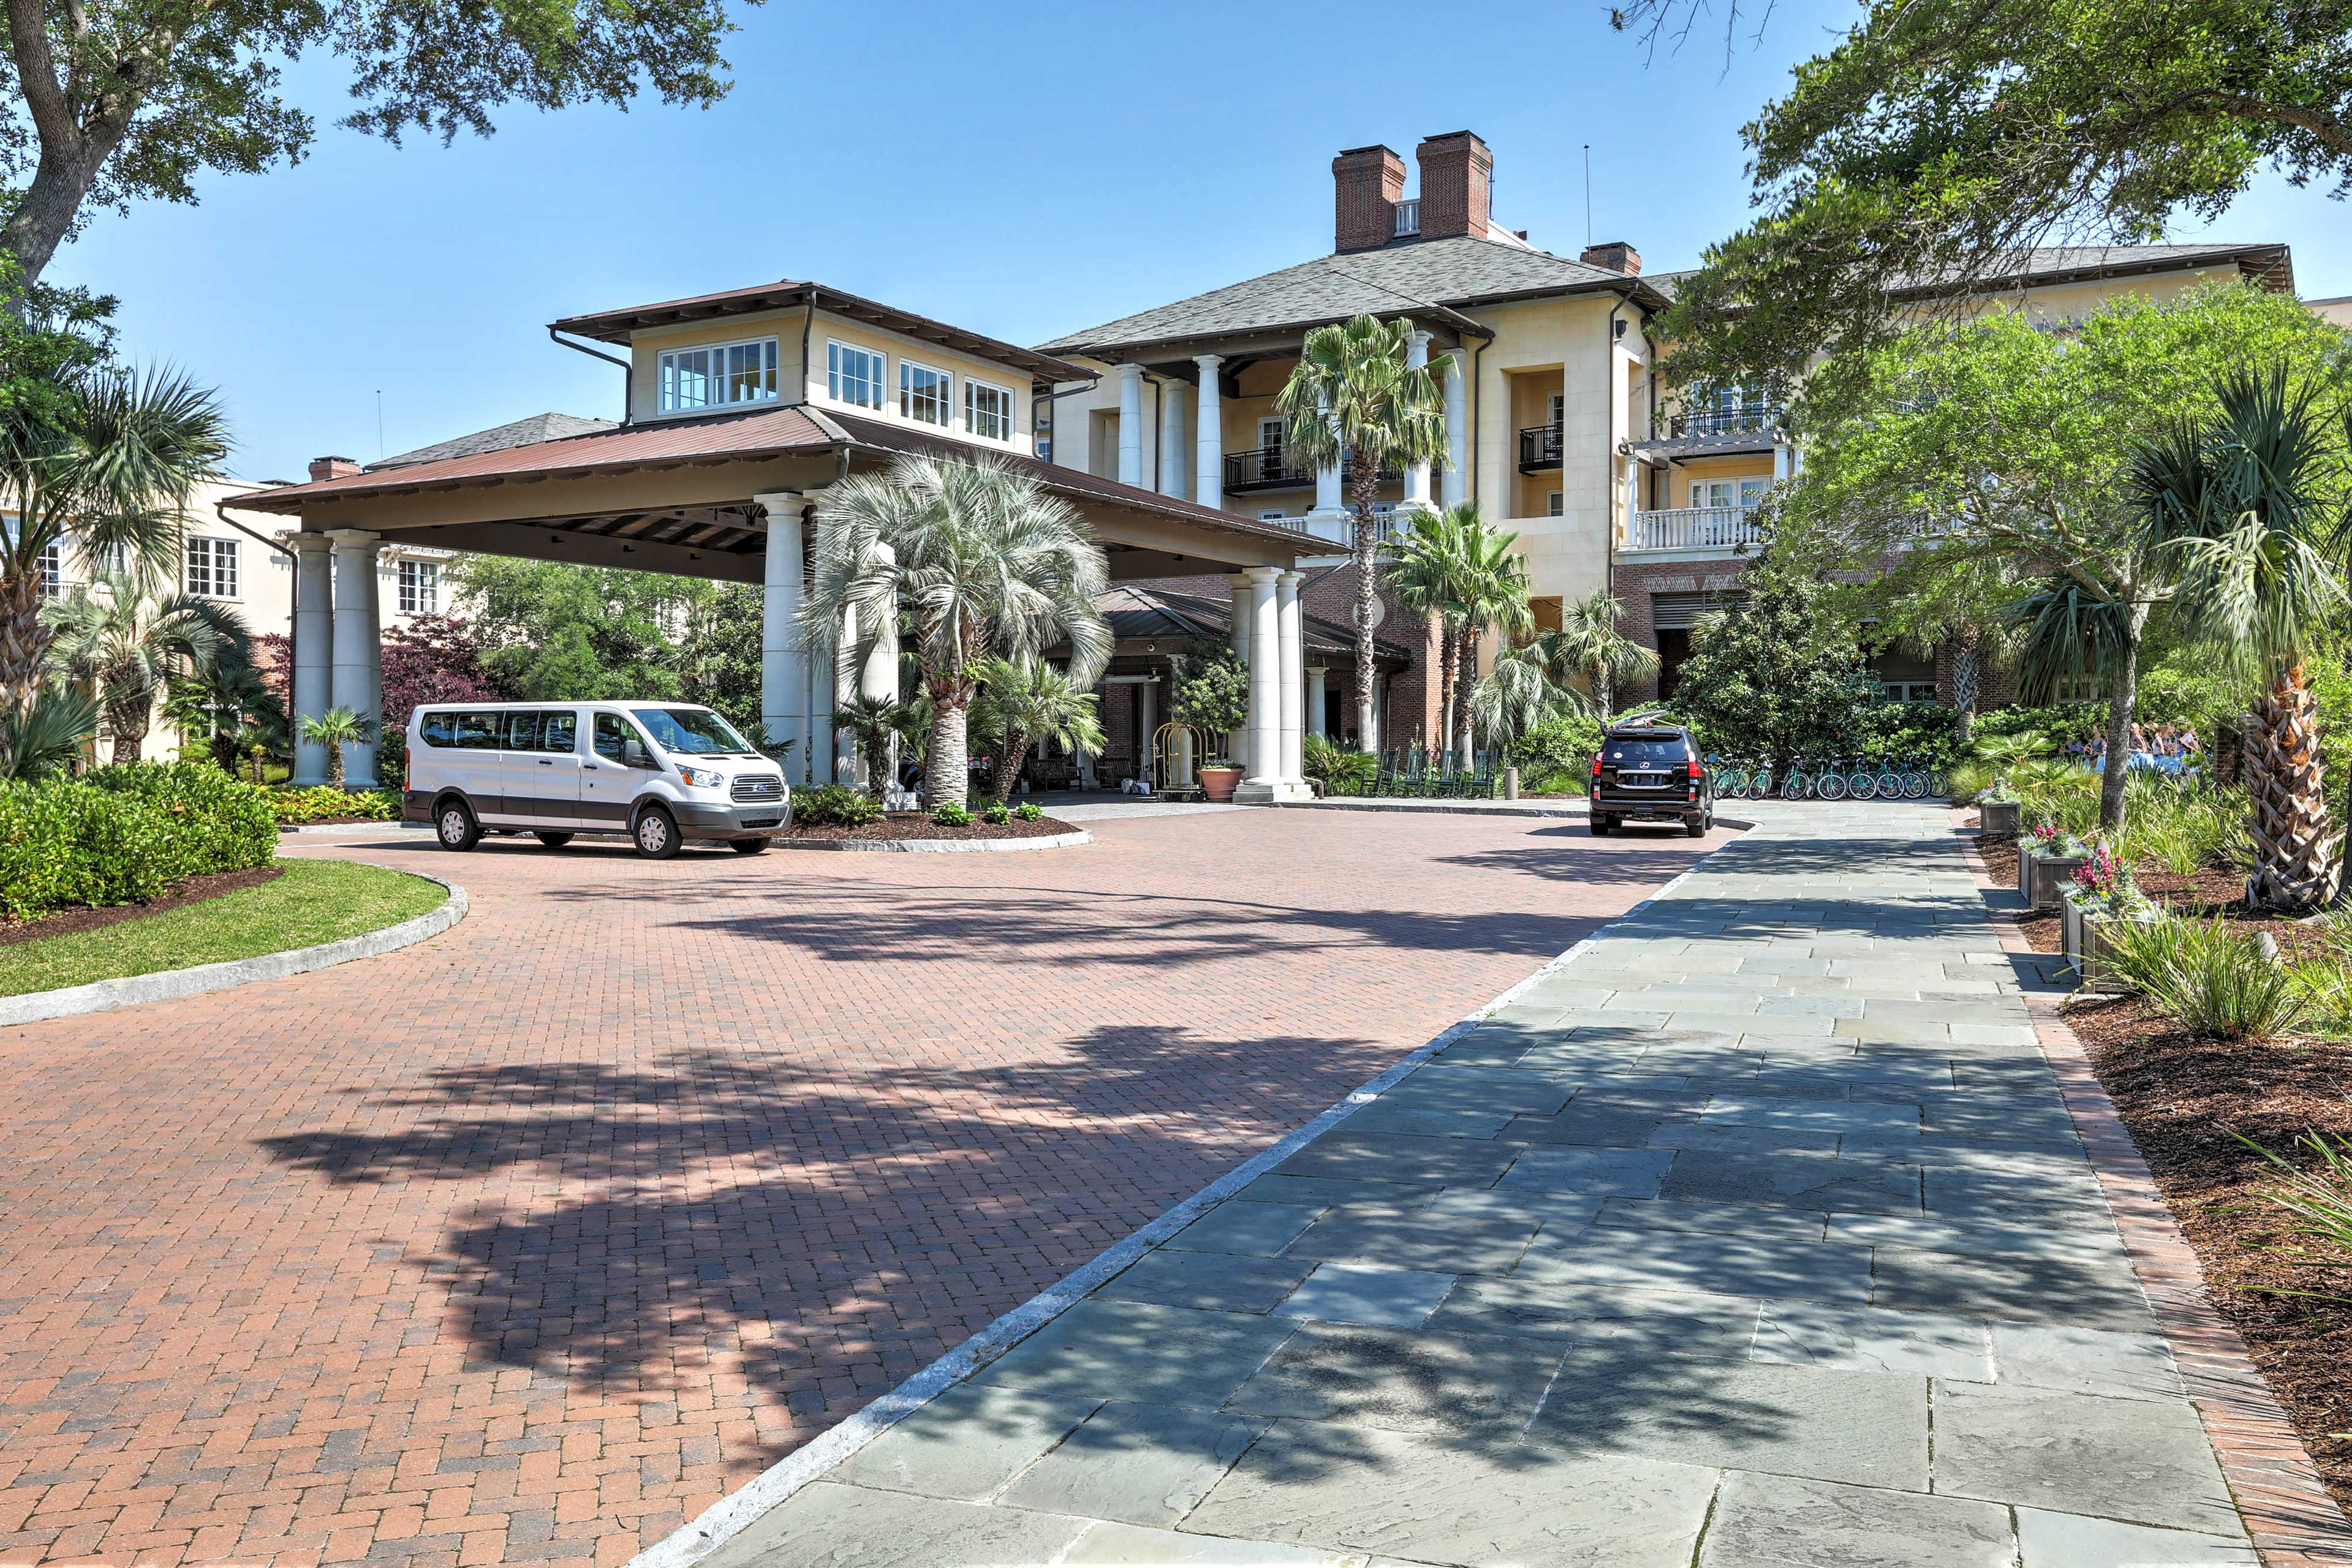 Book this beautiful vacation rental condo for the ultimate S.C. getaway!